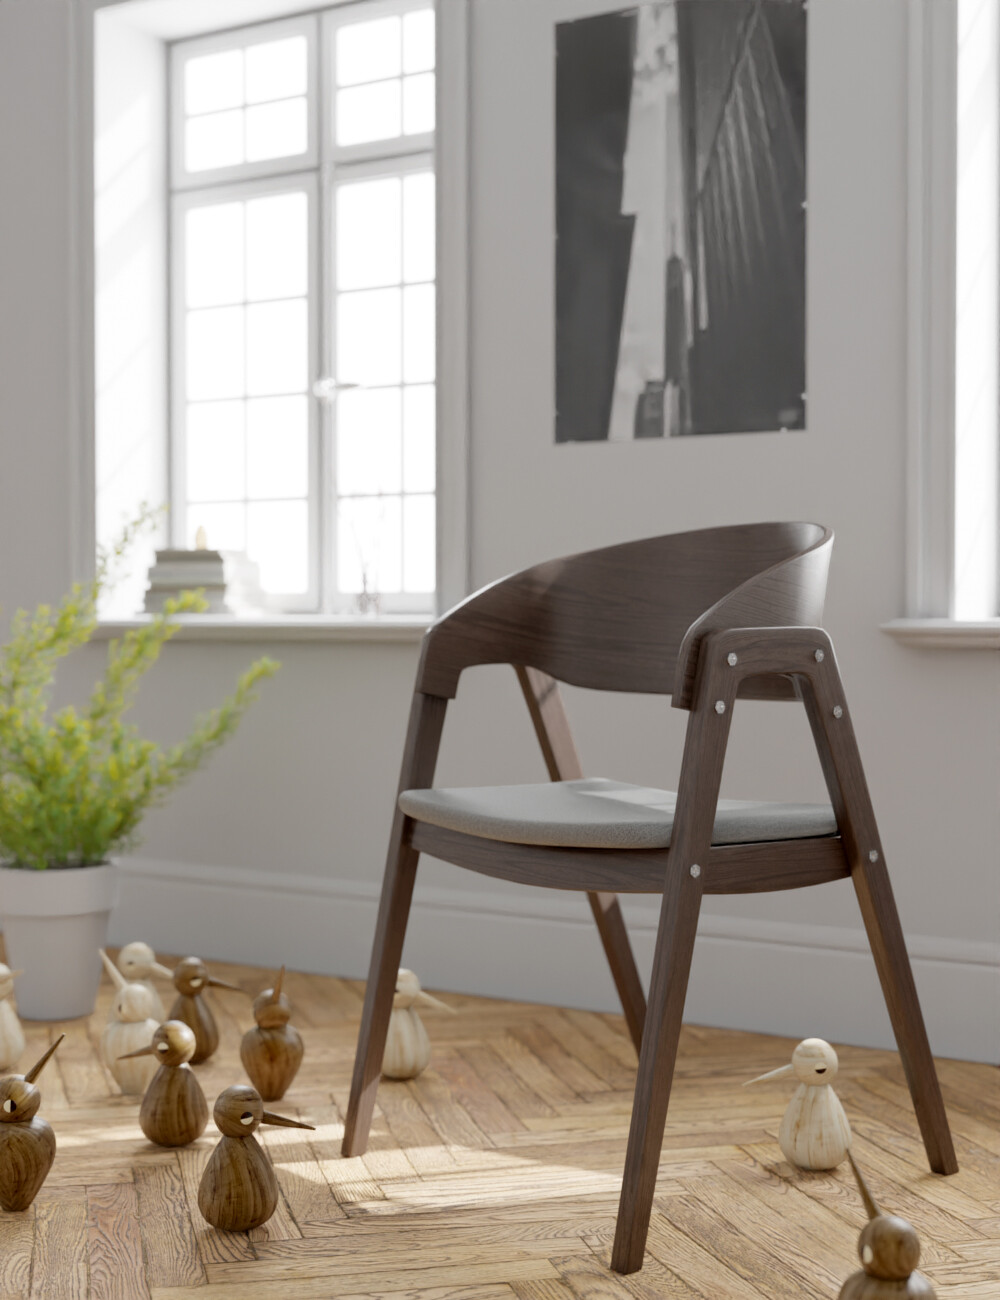 Christopher baumeister 2019 10 07 chair scene 02